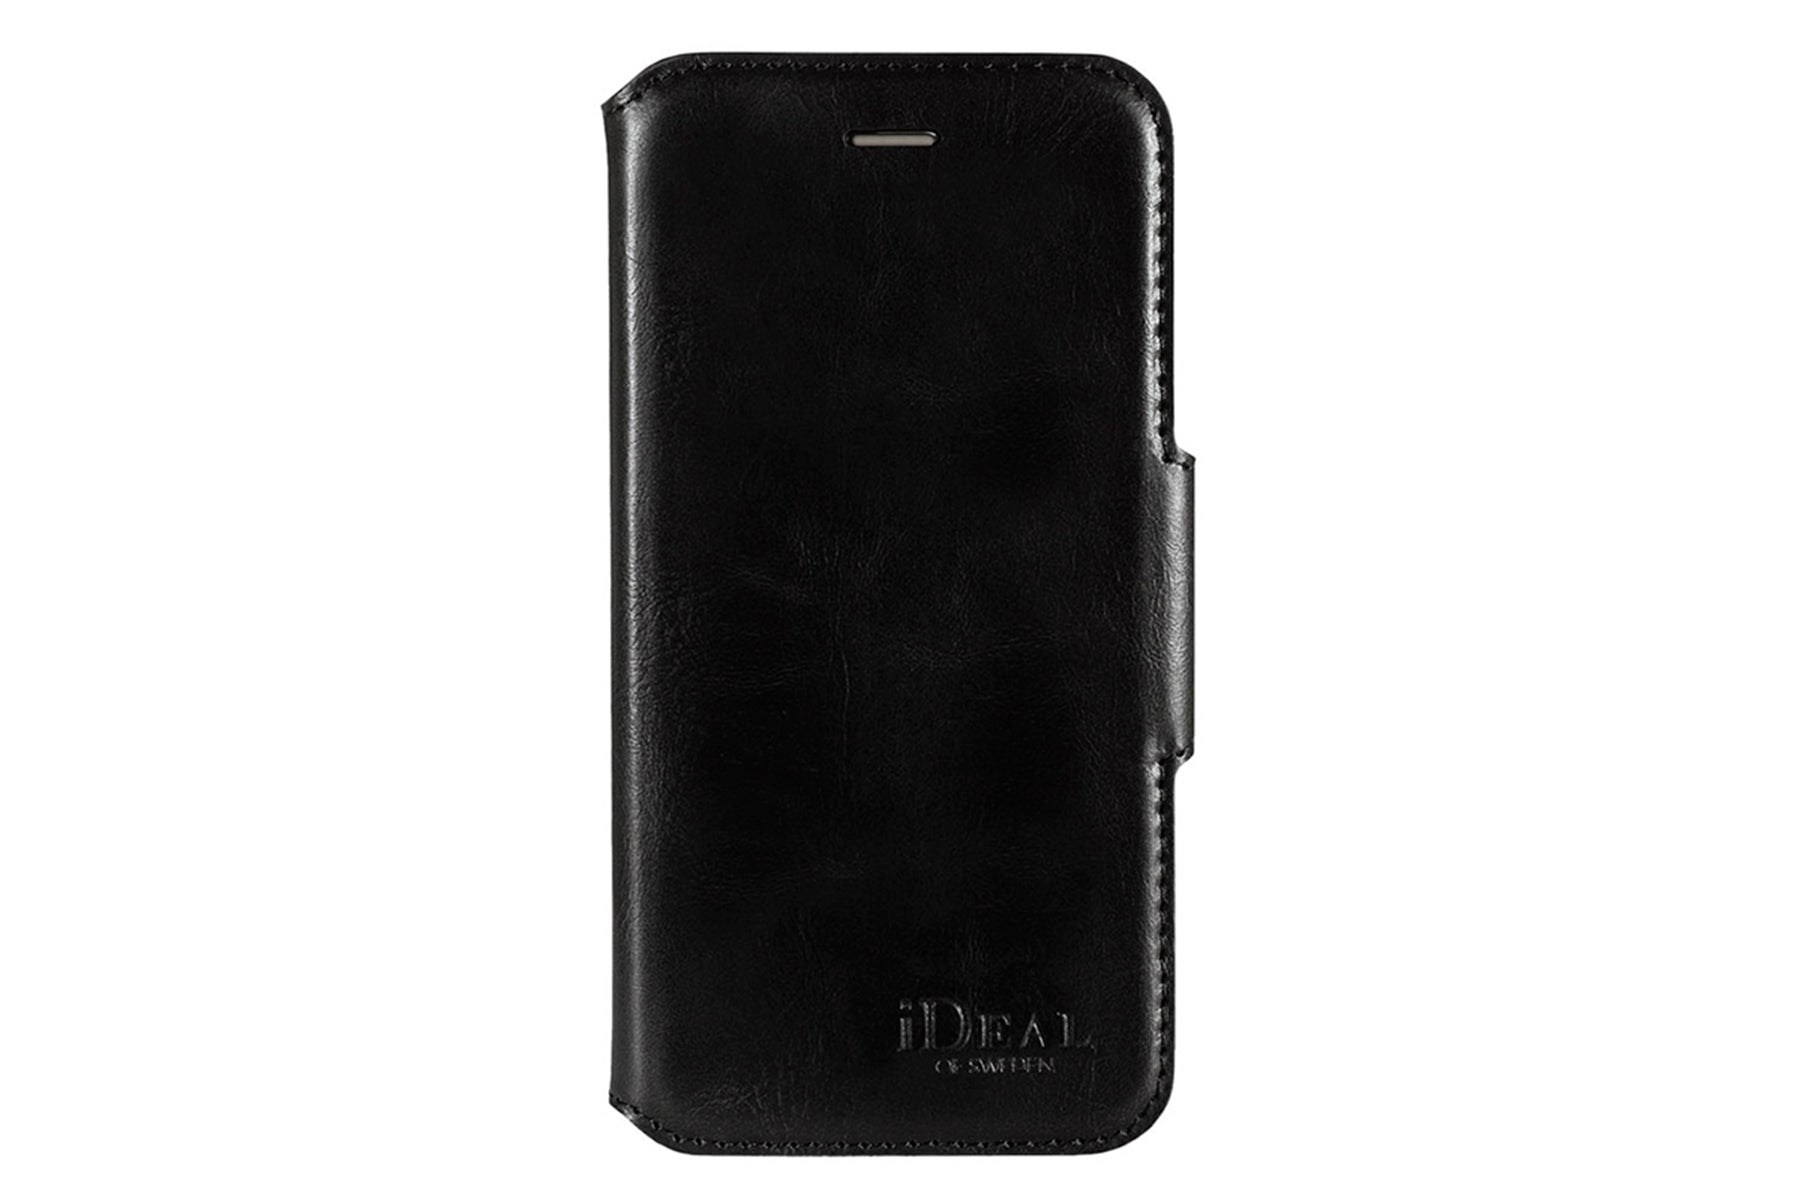 Ideal london wallet iphone 6/6s, iphone7/8 plus fra ideal of sweden på coverme